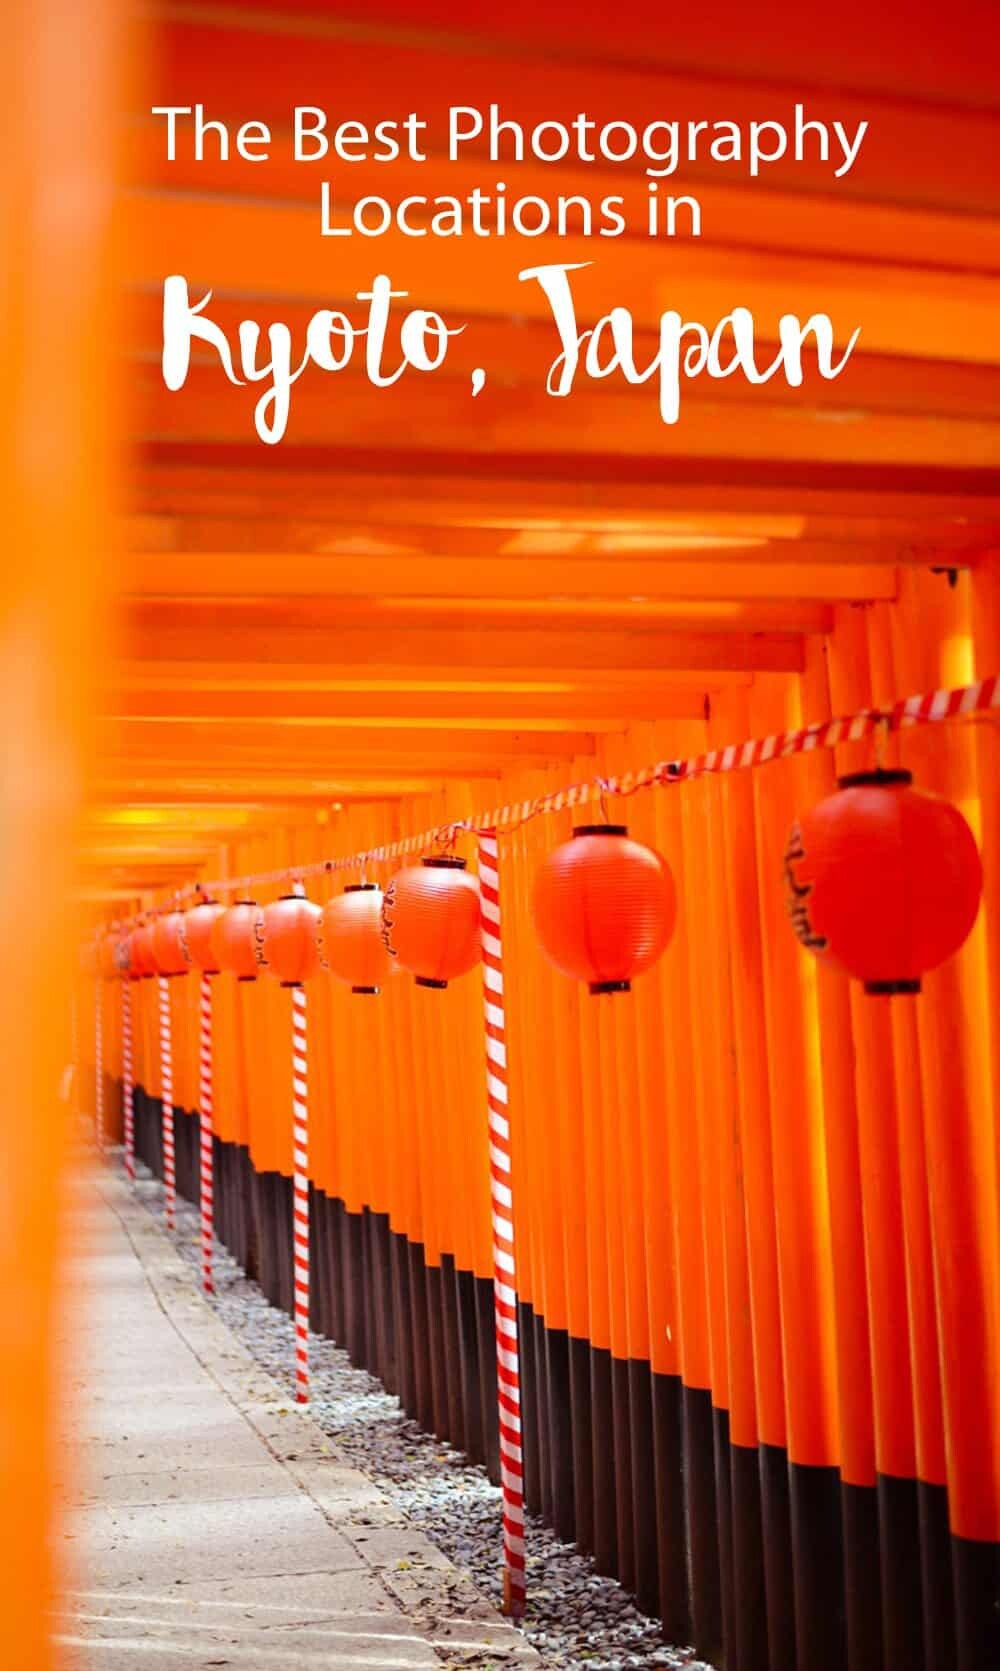 Kyoto Photography Locations by The Wandering Lens www.thewanderinglens.com